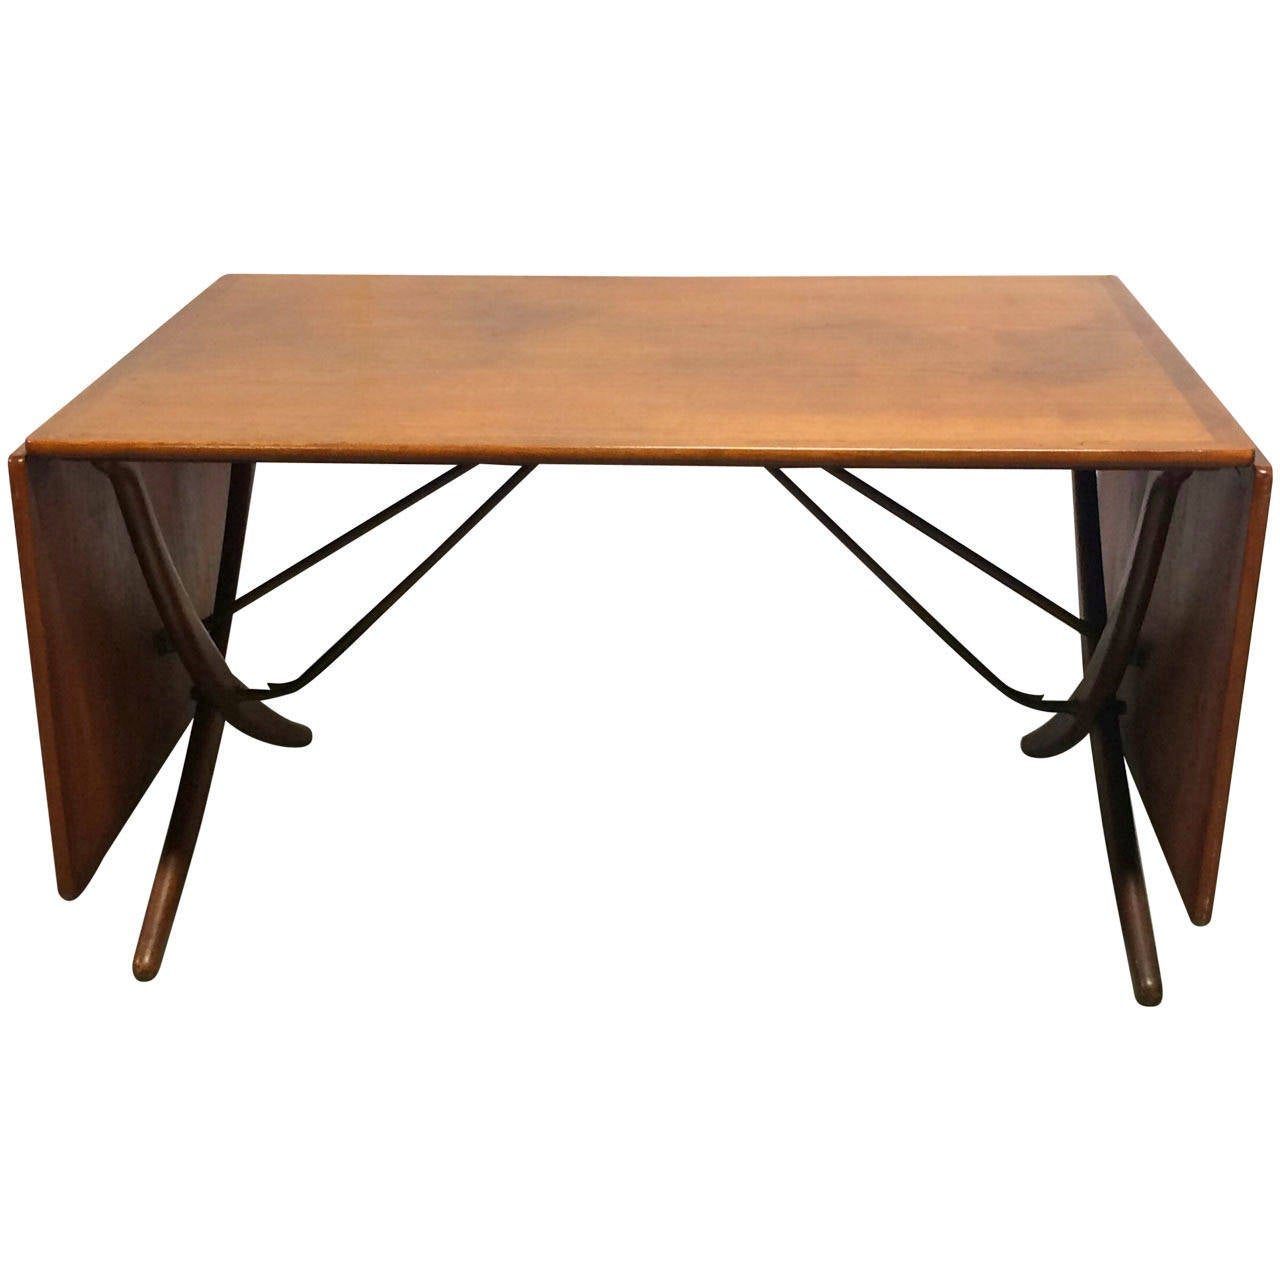 Hans wegner teak drop leaf dining table for sale at 1stdibs for Dining room table replacement leaf